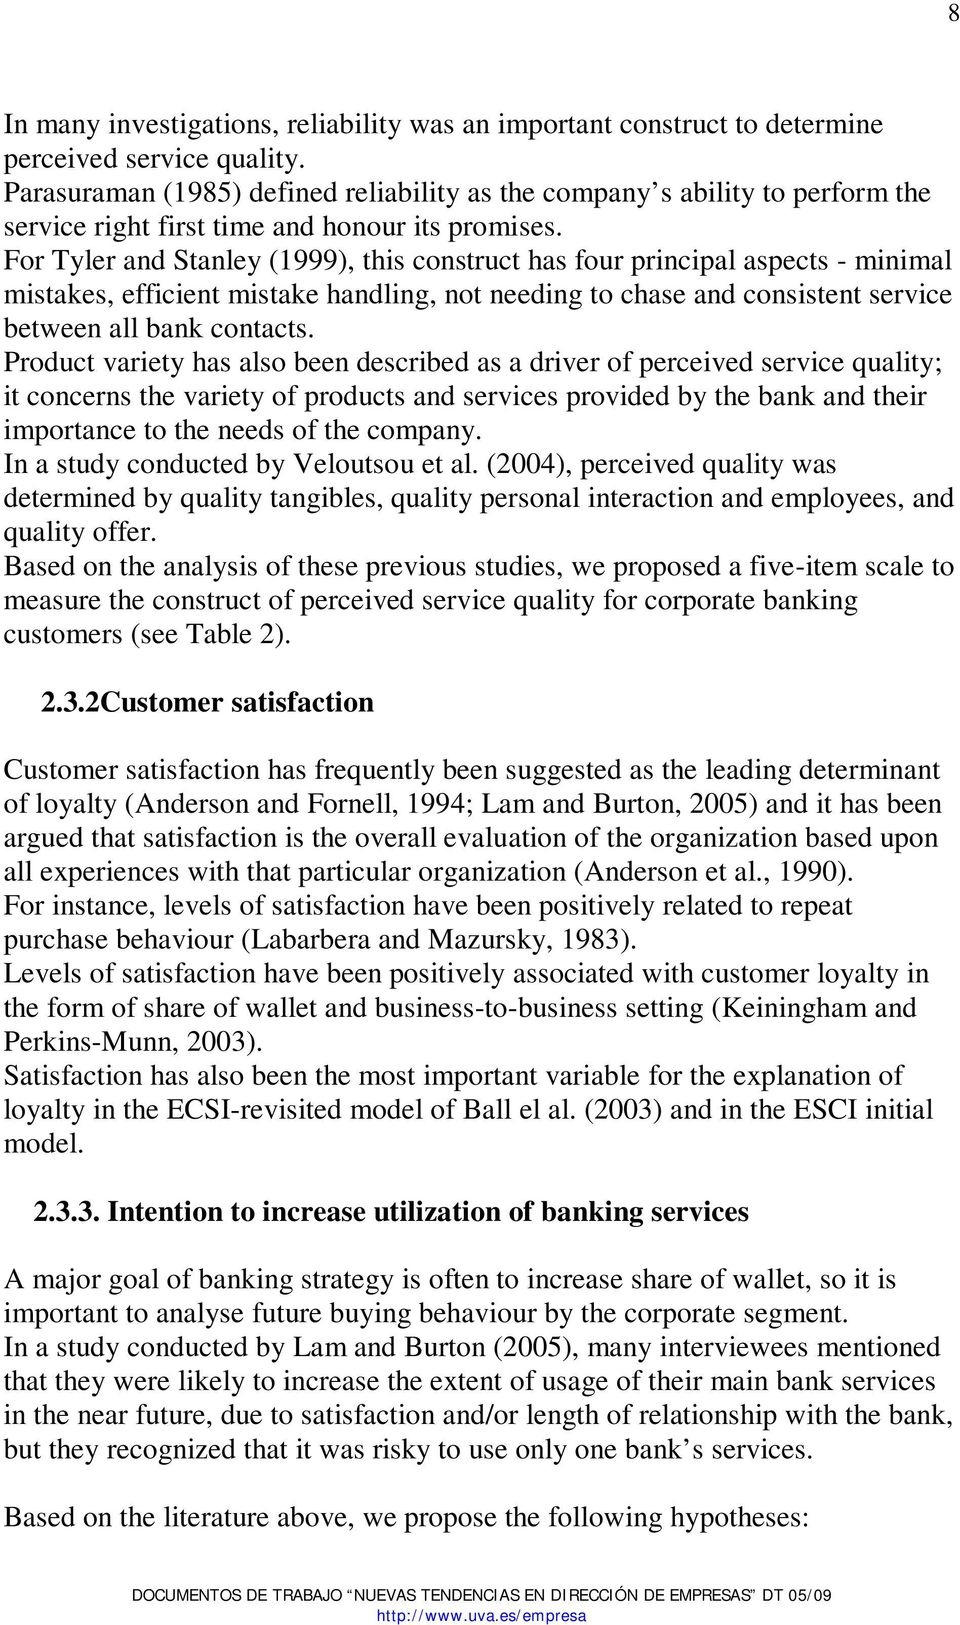 For Tyler and Stanley (1999), this construct has four principal aspects - minimal mistakes, efficient mistake handling, not needing to chase and consistent service between all bank contacts.